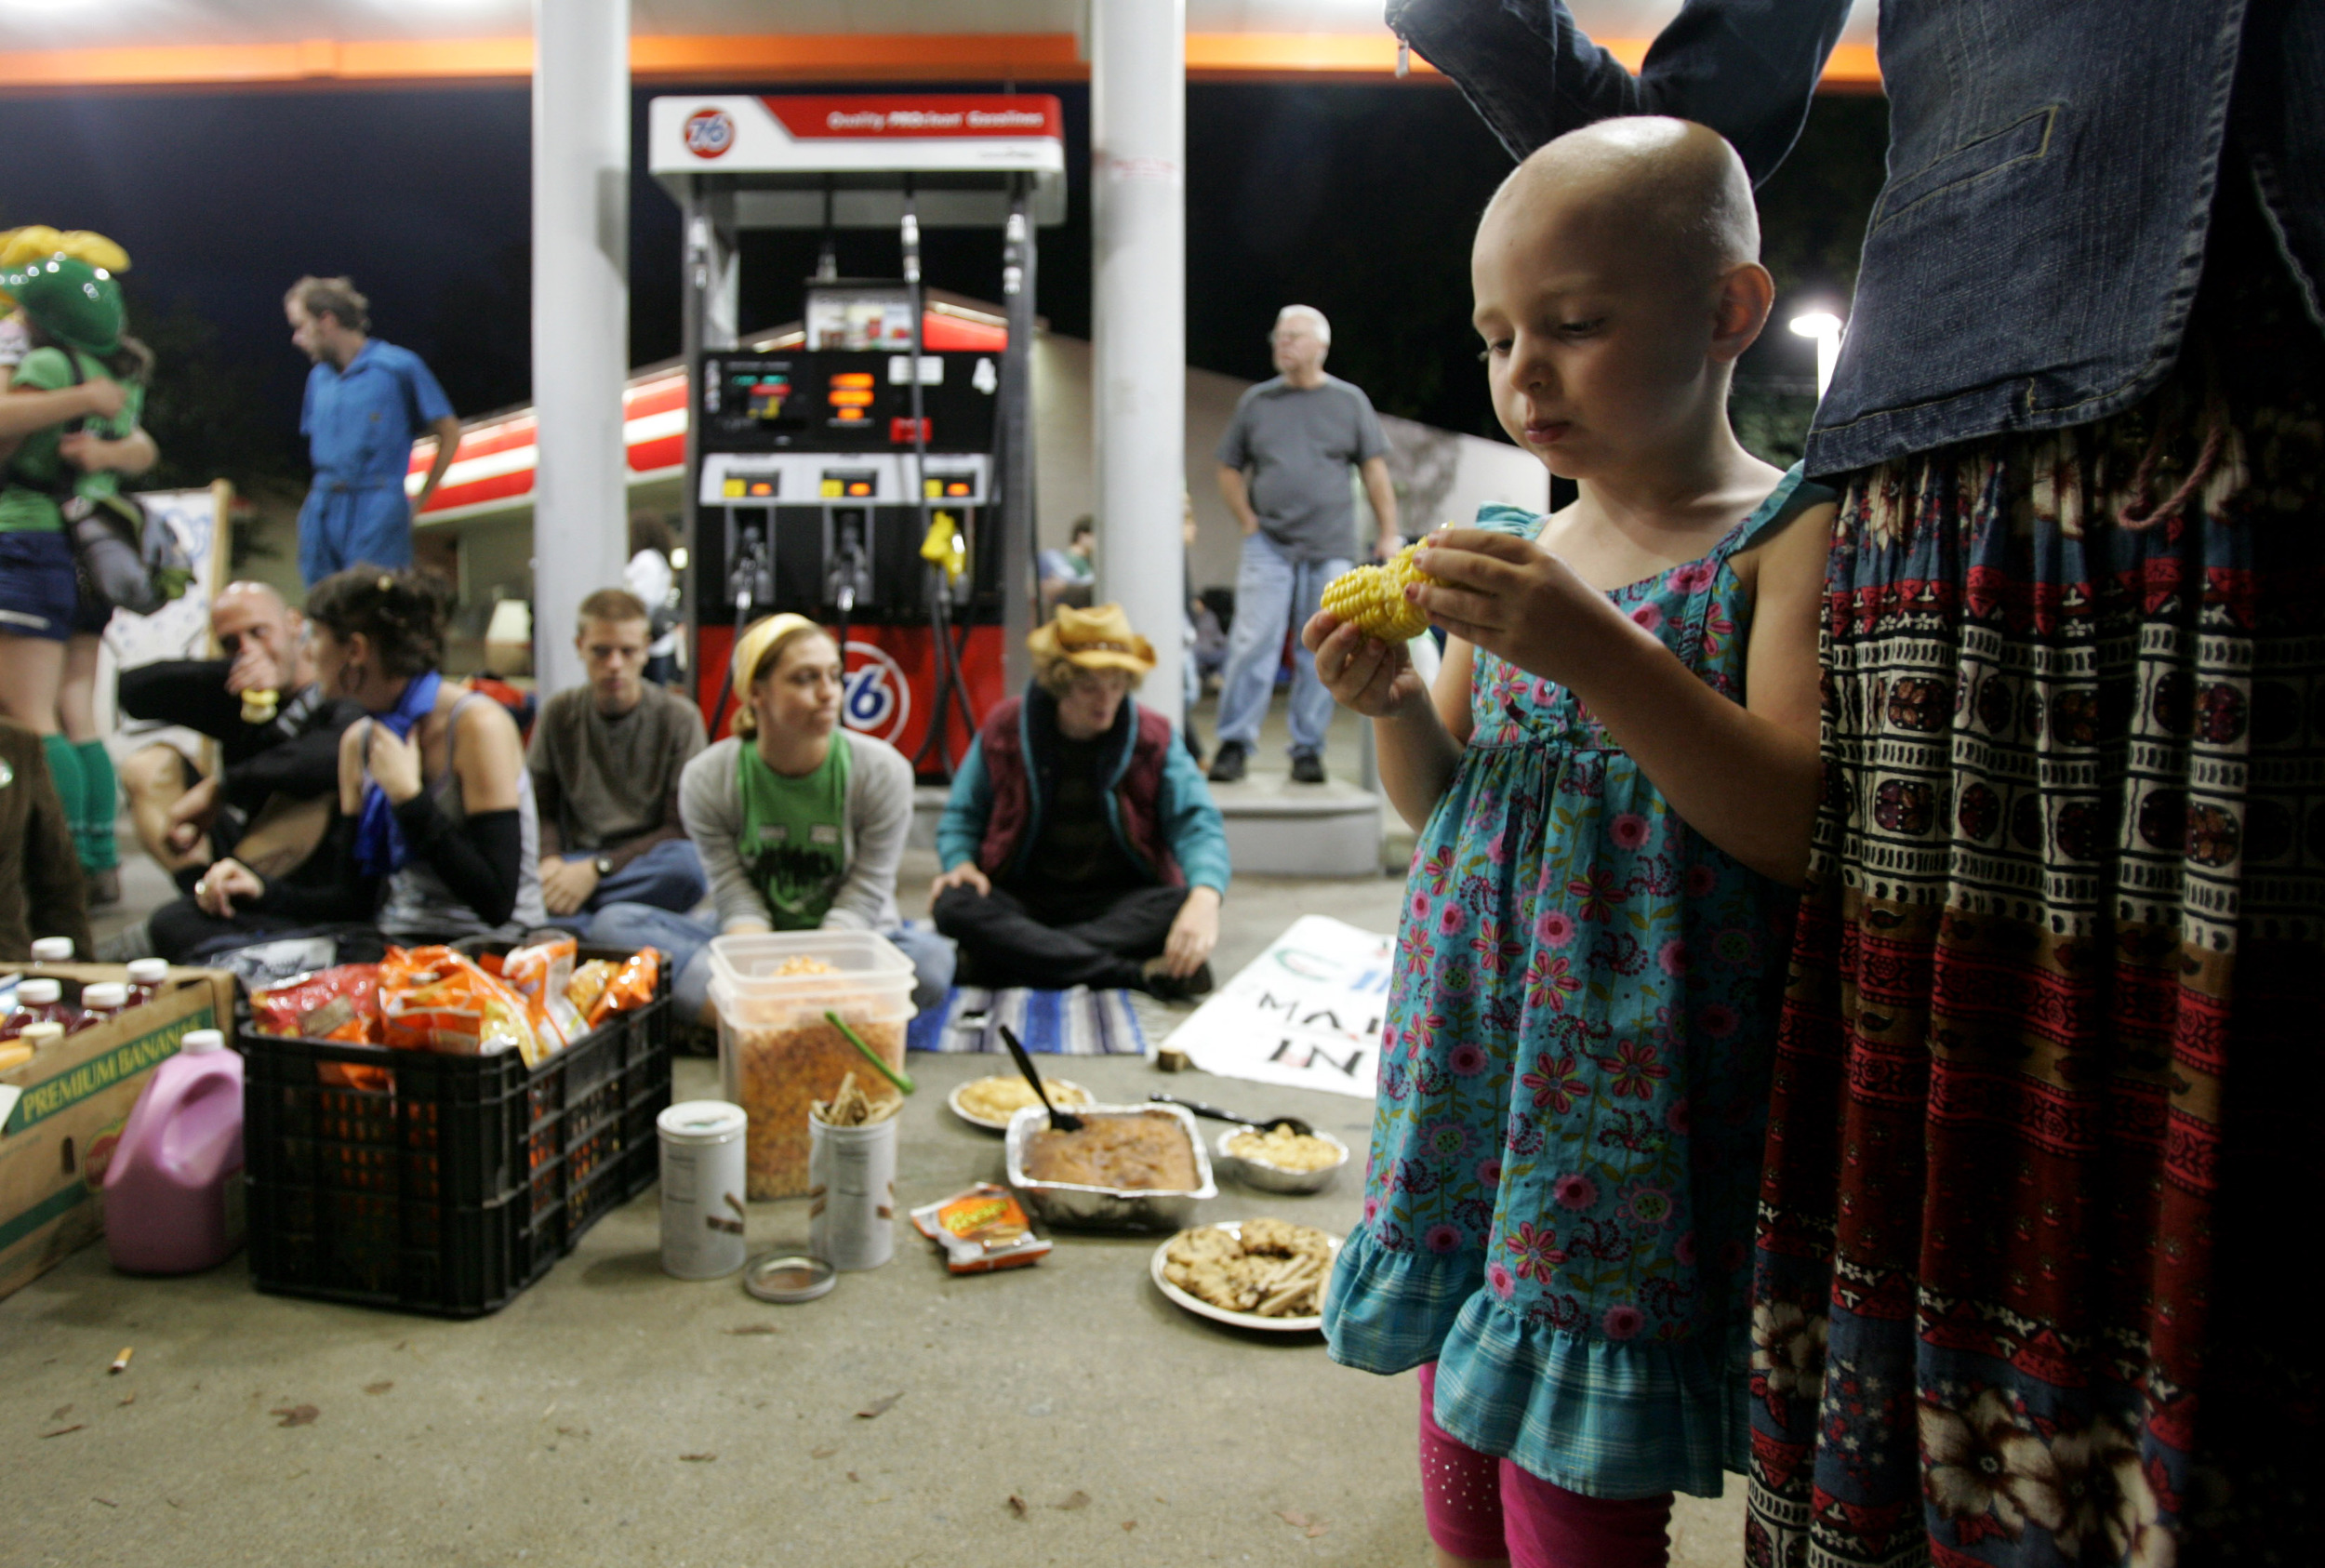 Nova Potter, 4, eats corn on the cob at a gas station where Food not Bombs had set up free food outside the town hall debate.